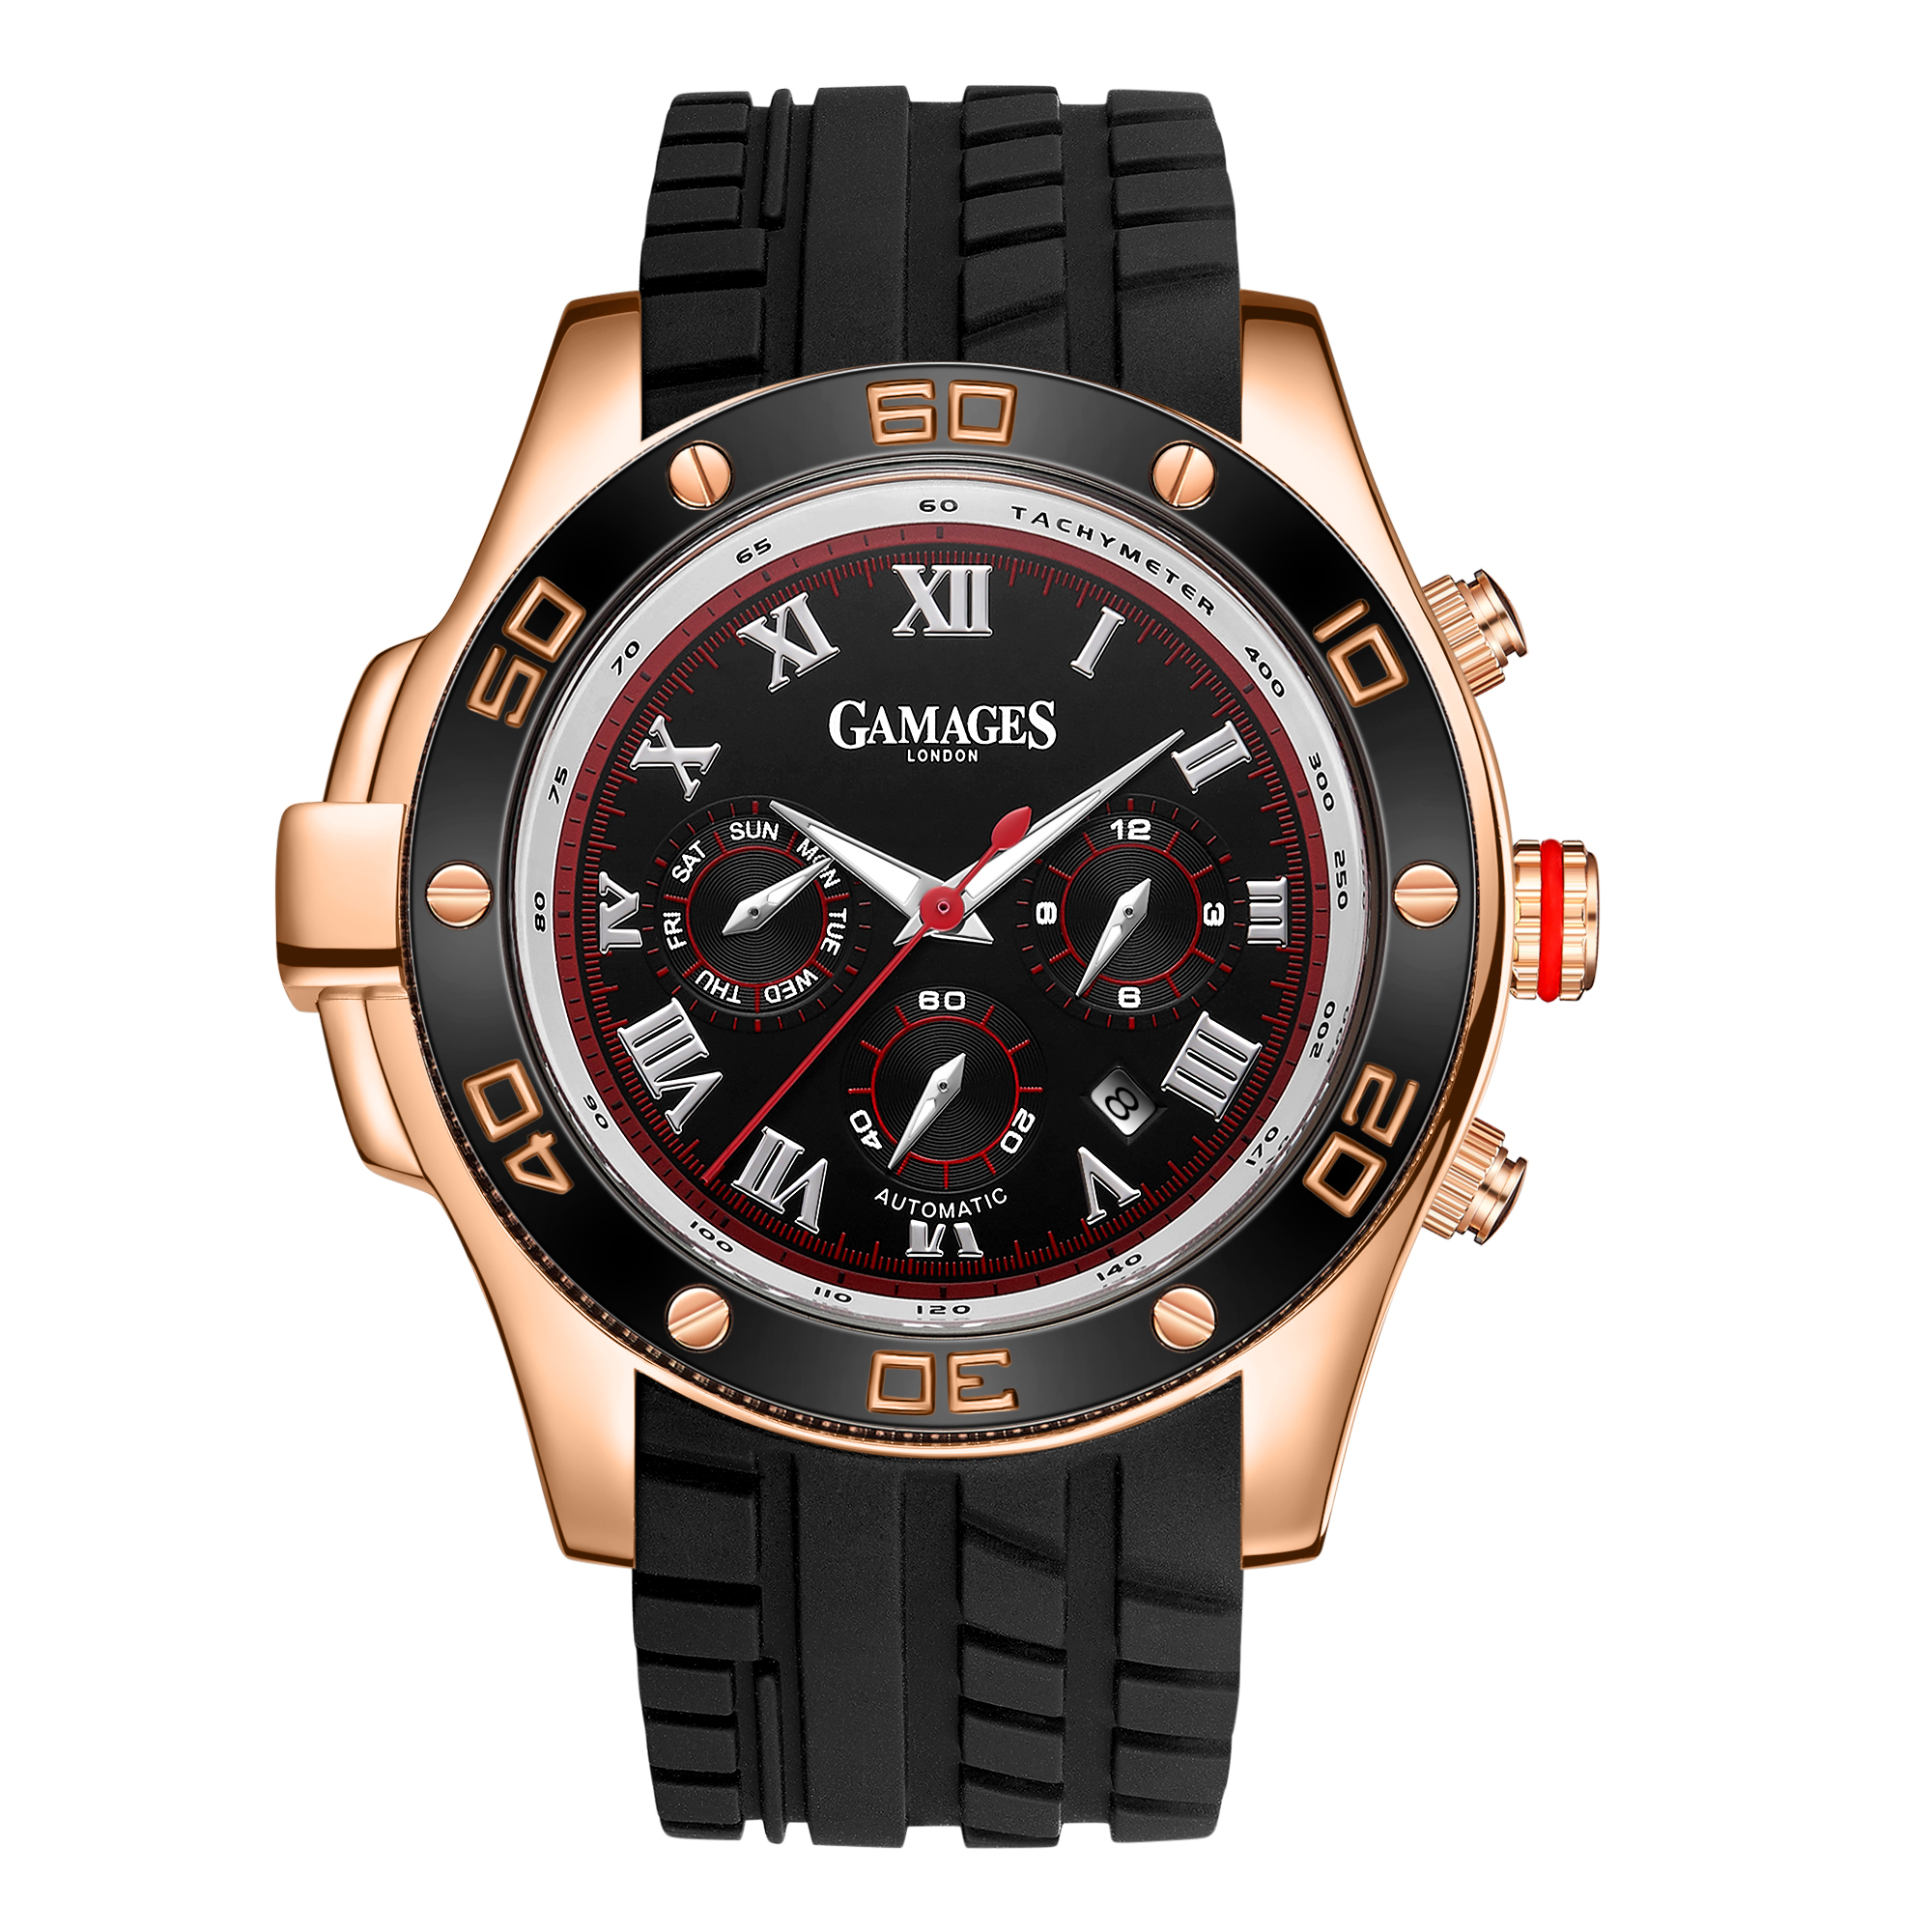 LLtd Edition Hand Assembled Gamages Driver Automatic Rose Gold – 5 Year Warranty & Free Delivery